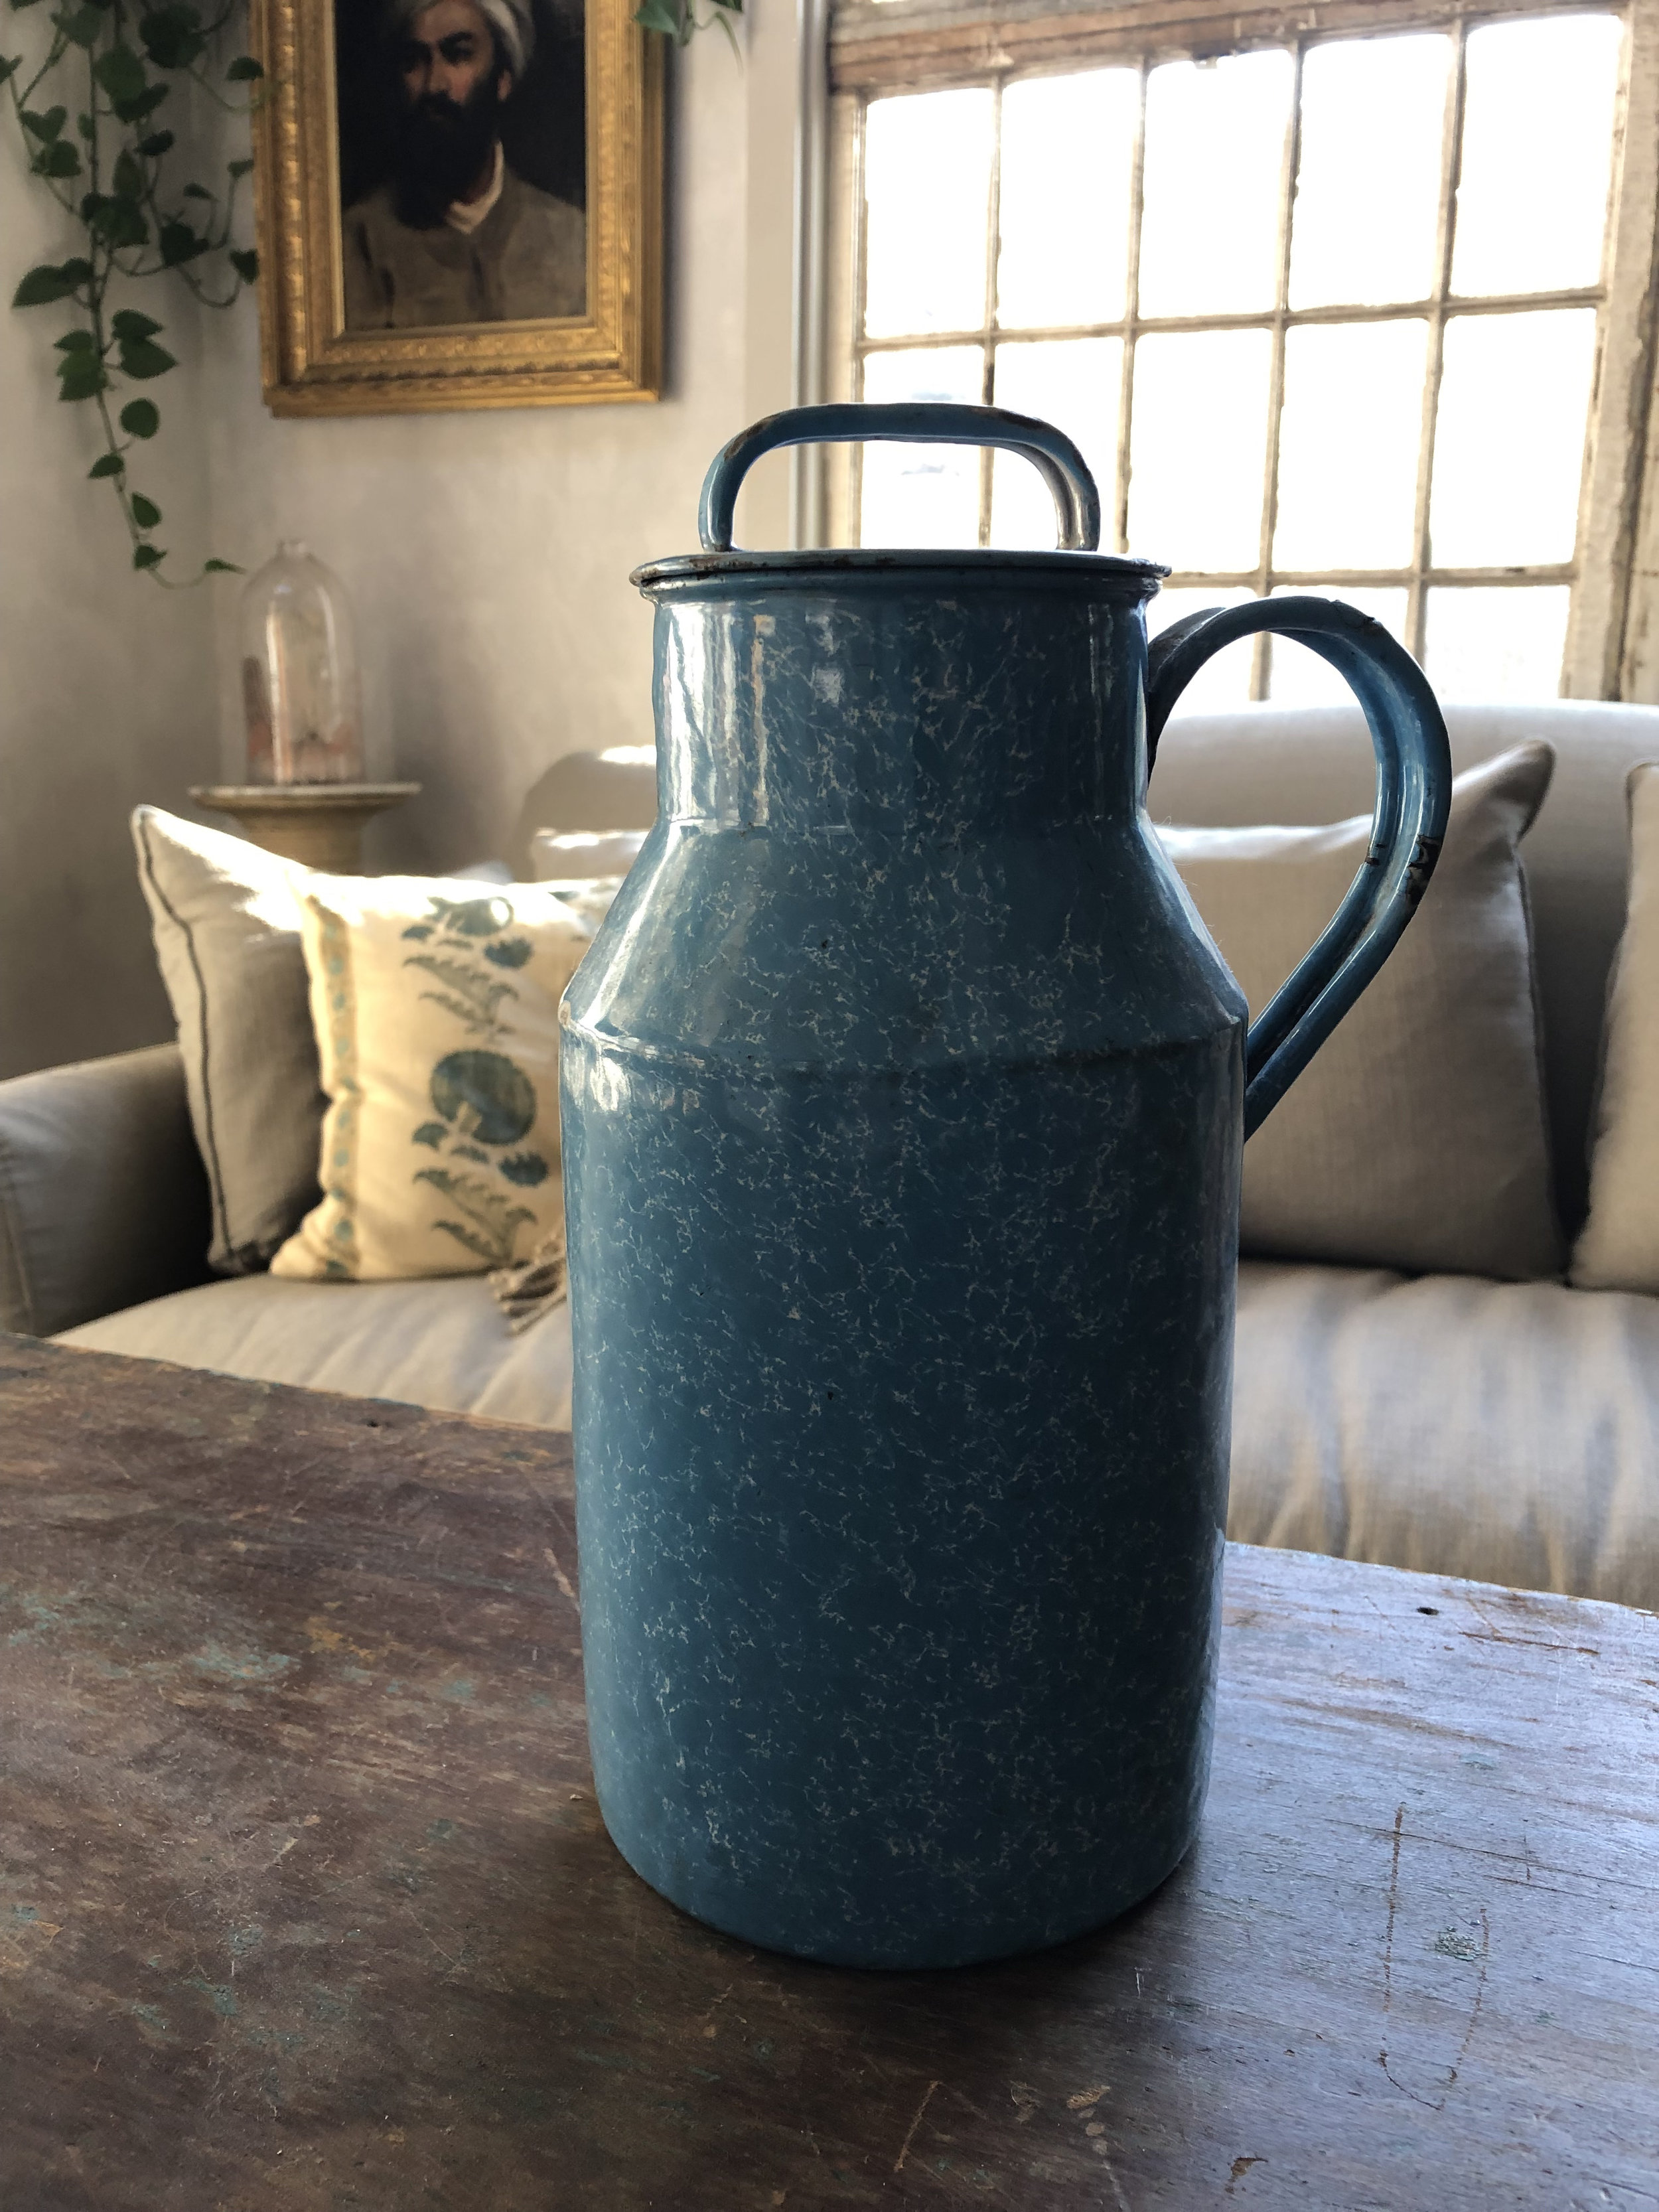 Enamelware Jug with Lid - Vintage piece that shows some age. Beautiful with flower branches. 10